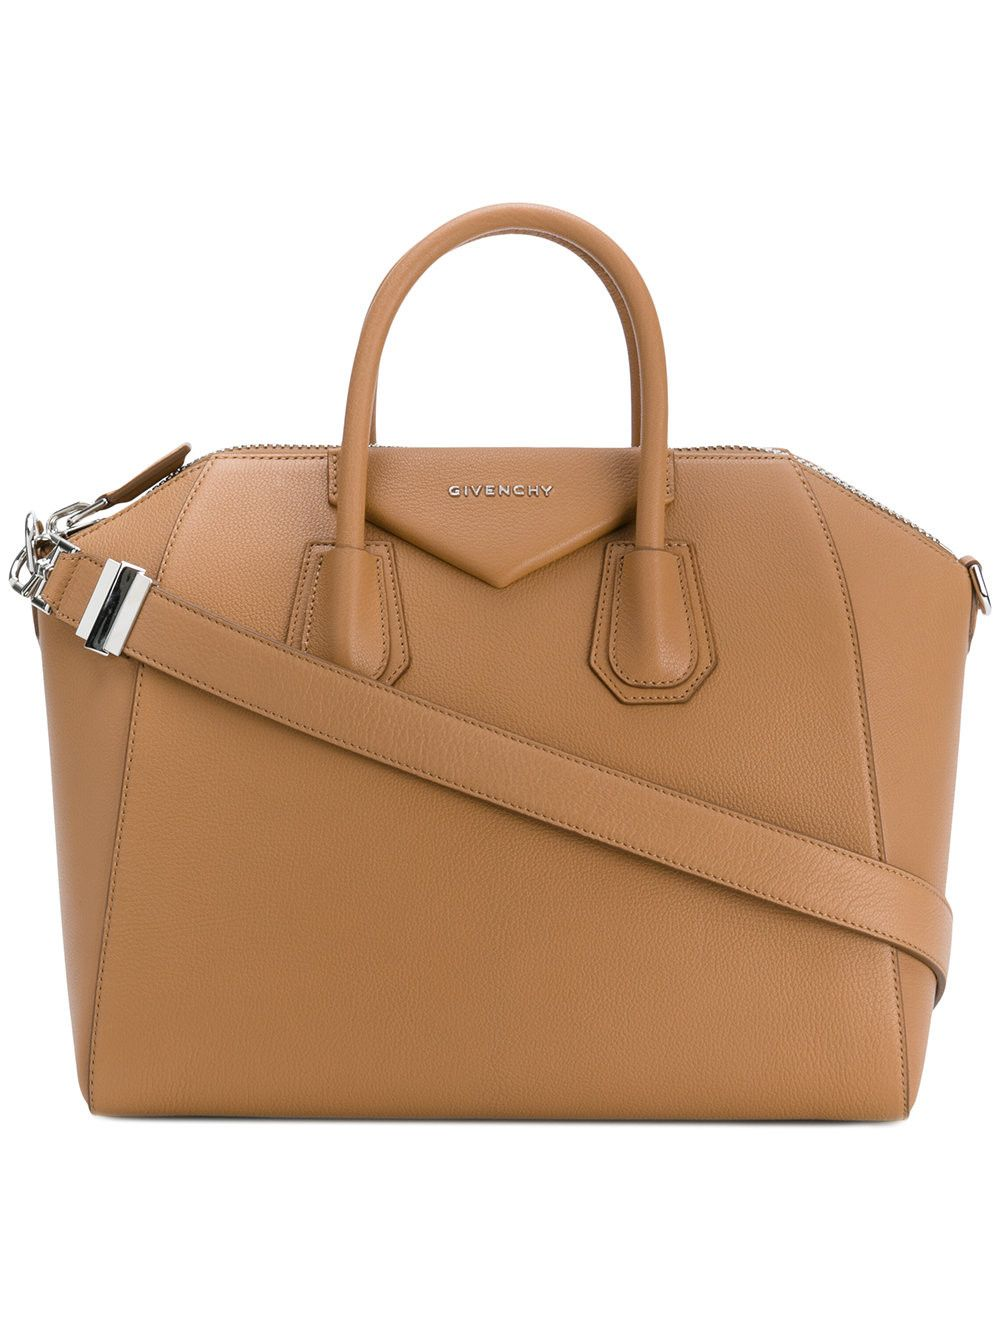 e570179c68 GIVENCHY . #givenchy #bags #shoulder bags #hand bags #tote #lining ...